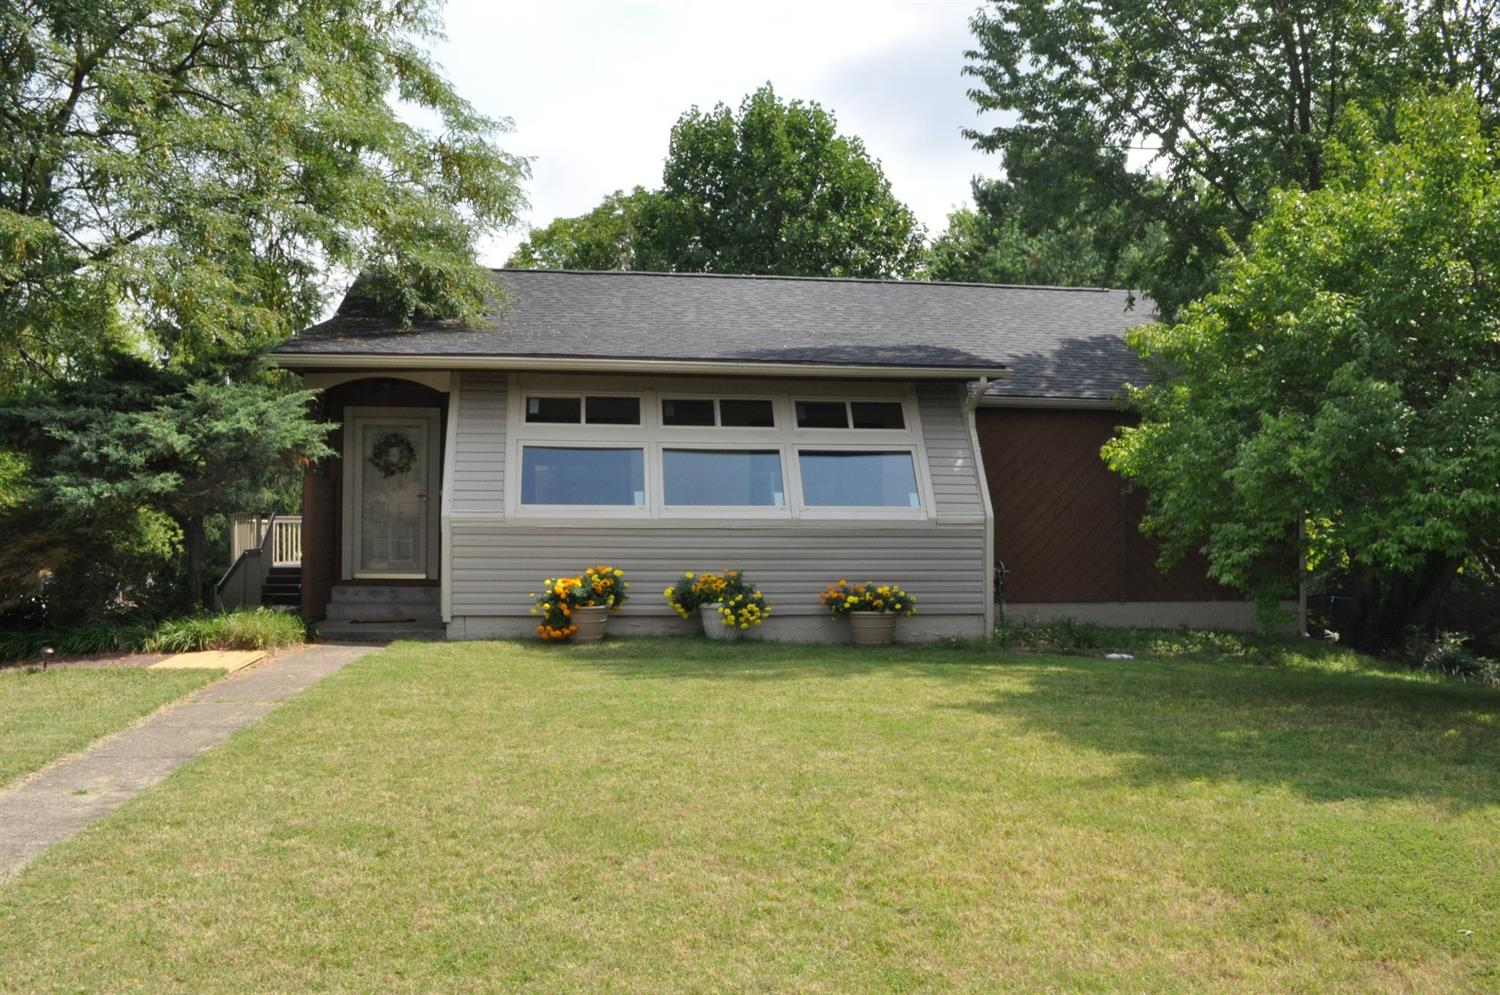 Ranch%20%20with%20NEW%20roof,%20bedroom%20carpet%20&%20sunroom%20picture%20windows!%20Huge%20full%20finished%20walkout%20basement,%20with%20it's%20own%20full%20bath,%20located%20on%20spacious%20corner%20lot%20of%20quiet%20cul%20de%20sac.%20%20Loads%20of%20finished%20square%20footage,%20including%20cheerful%20bright%20sunroom%20on%20front%20of%20home%20perfect%20for%20the%20gardening%20enthusiast%20or%20hobby%20room.%20%20Finished%20basement%20has%20tons%20of%20storage.%20%20Large%20wrap%20around%20deck.%20%20Home%20has%20attached%20one%20car%20garage%20on%20basement%20level%20as%20well%20as%20nice%20sized%20driveway%20with%20parking%20area%20for%20extra%20cars.%20Seller%20offering%20$3000%20towards%20closing%20costs%20or%20new%20kitchen%20appliance%20package.%20%20If%20you're%20looking%20for%20a%20ranch%20with%20%20loads%20of%20living%20space%20on%202%20levels%20for%20a%20reasonable%20price,%20this%20is%20the%20home%20for%20you!